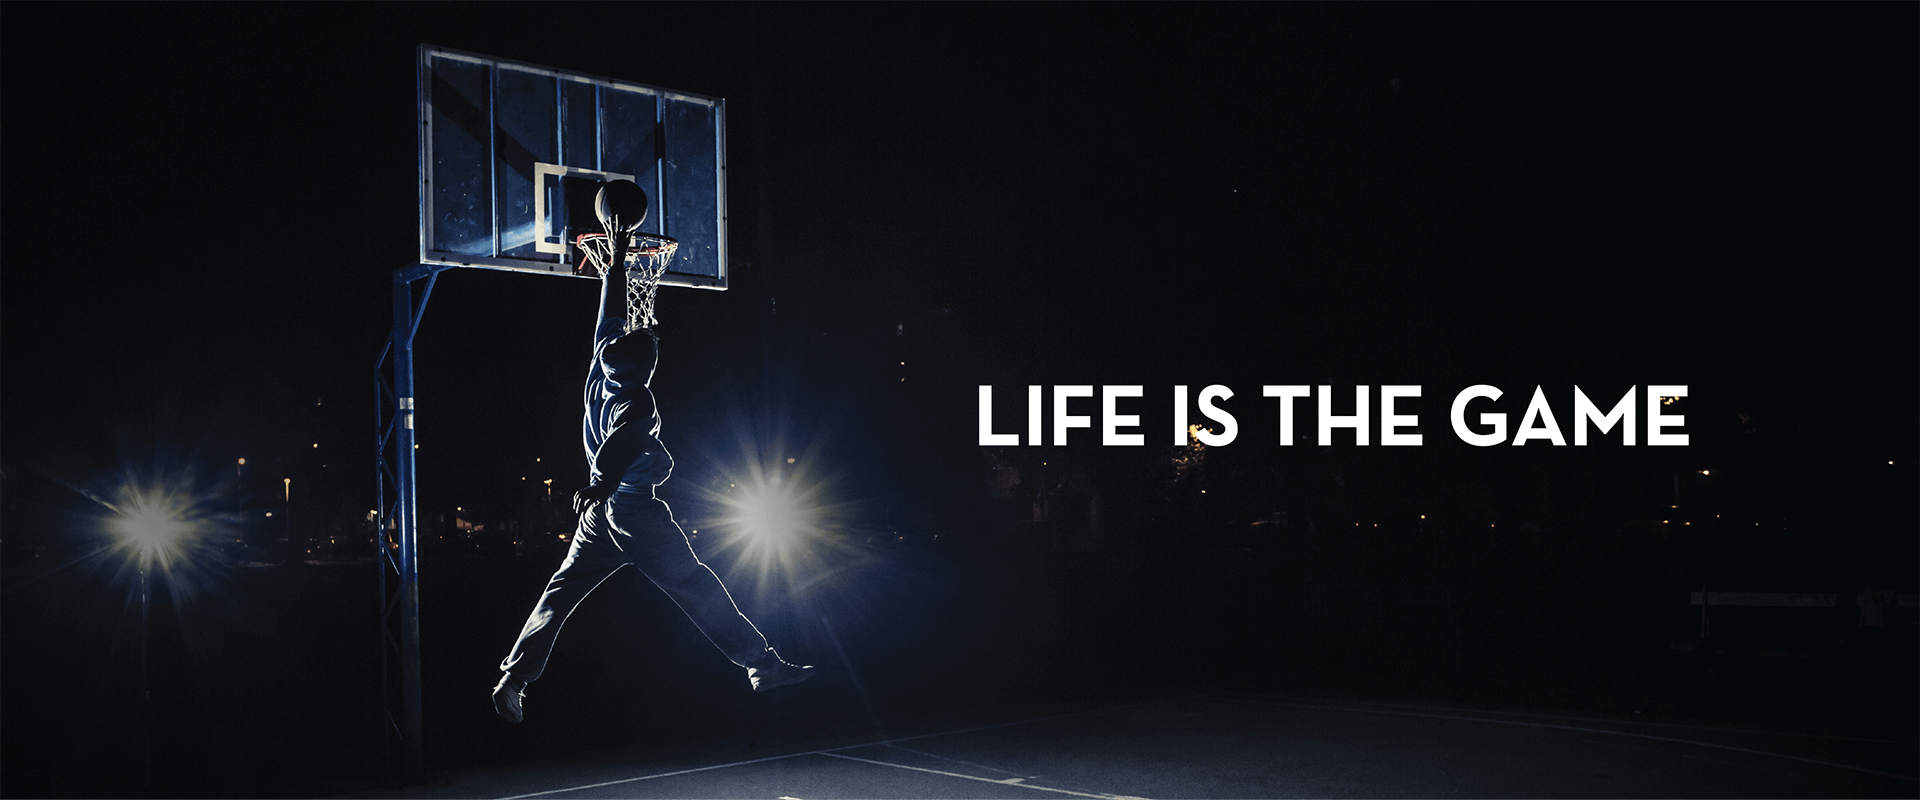 Life is the game